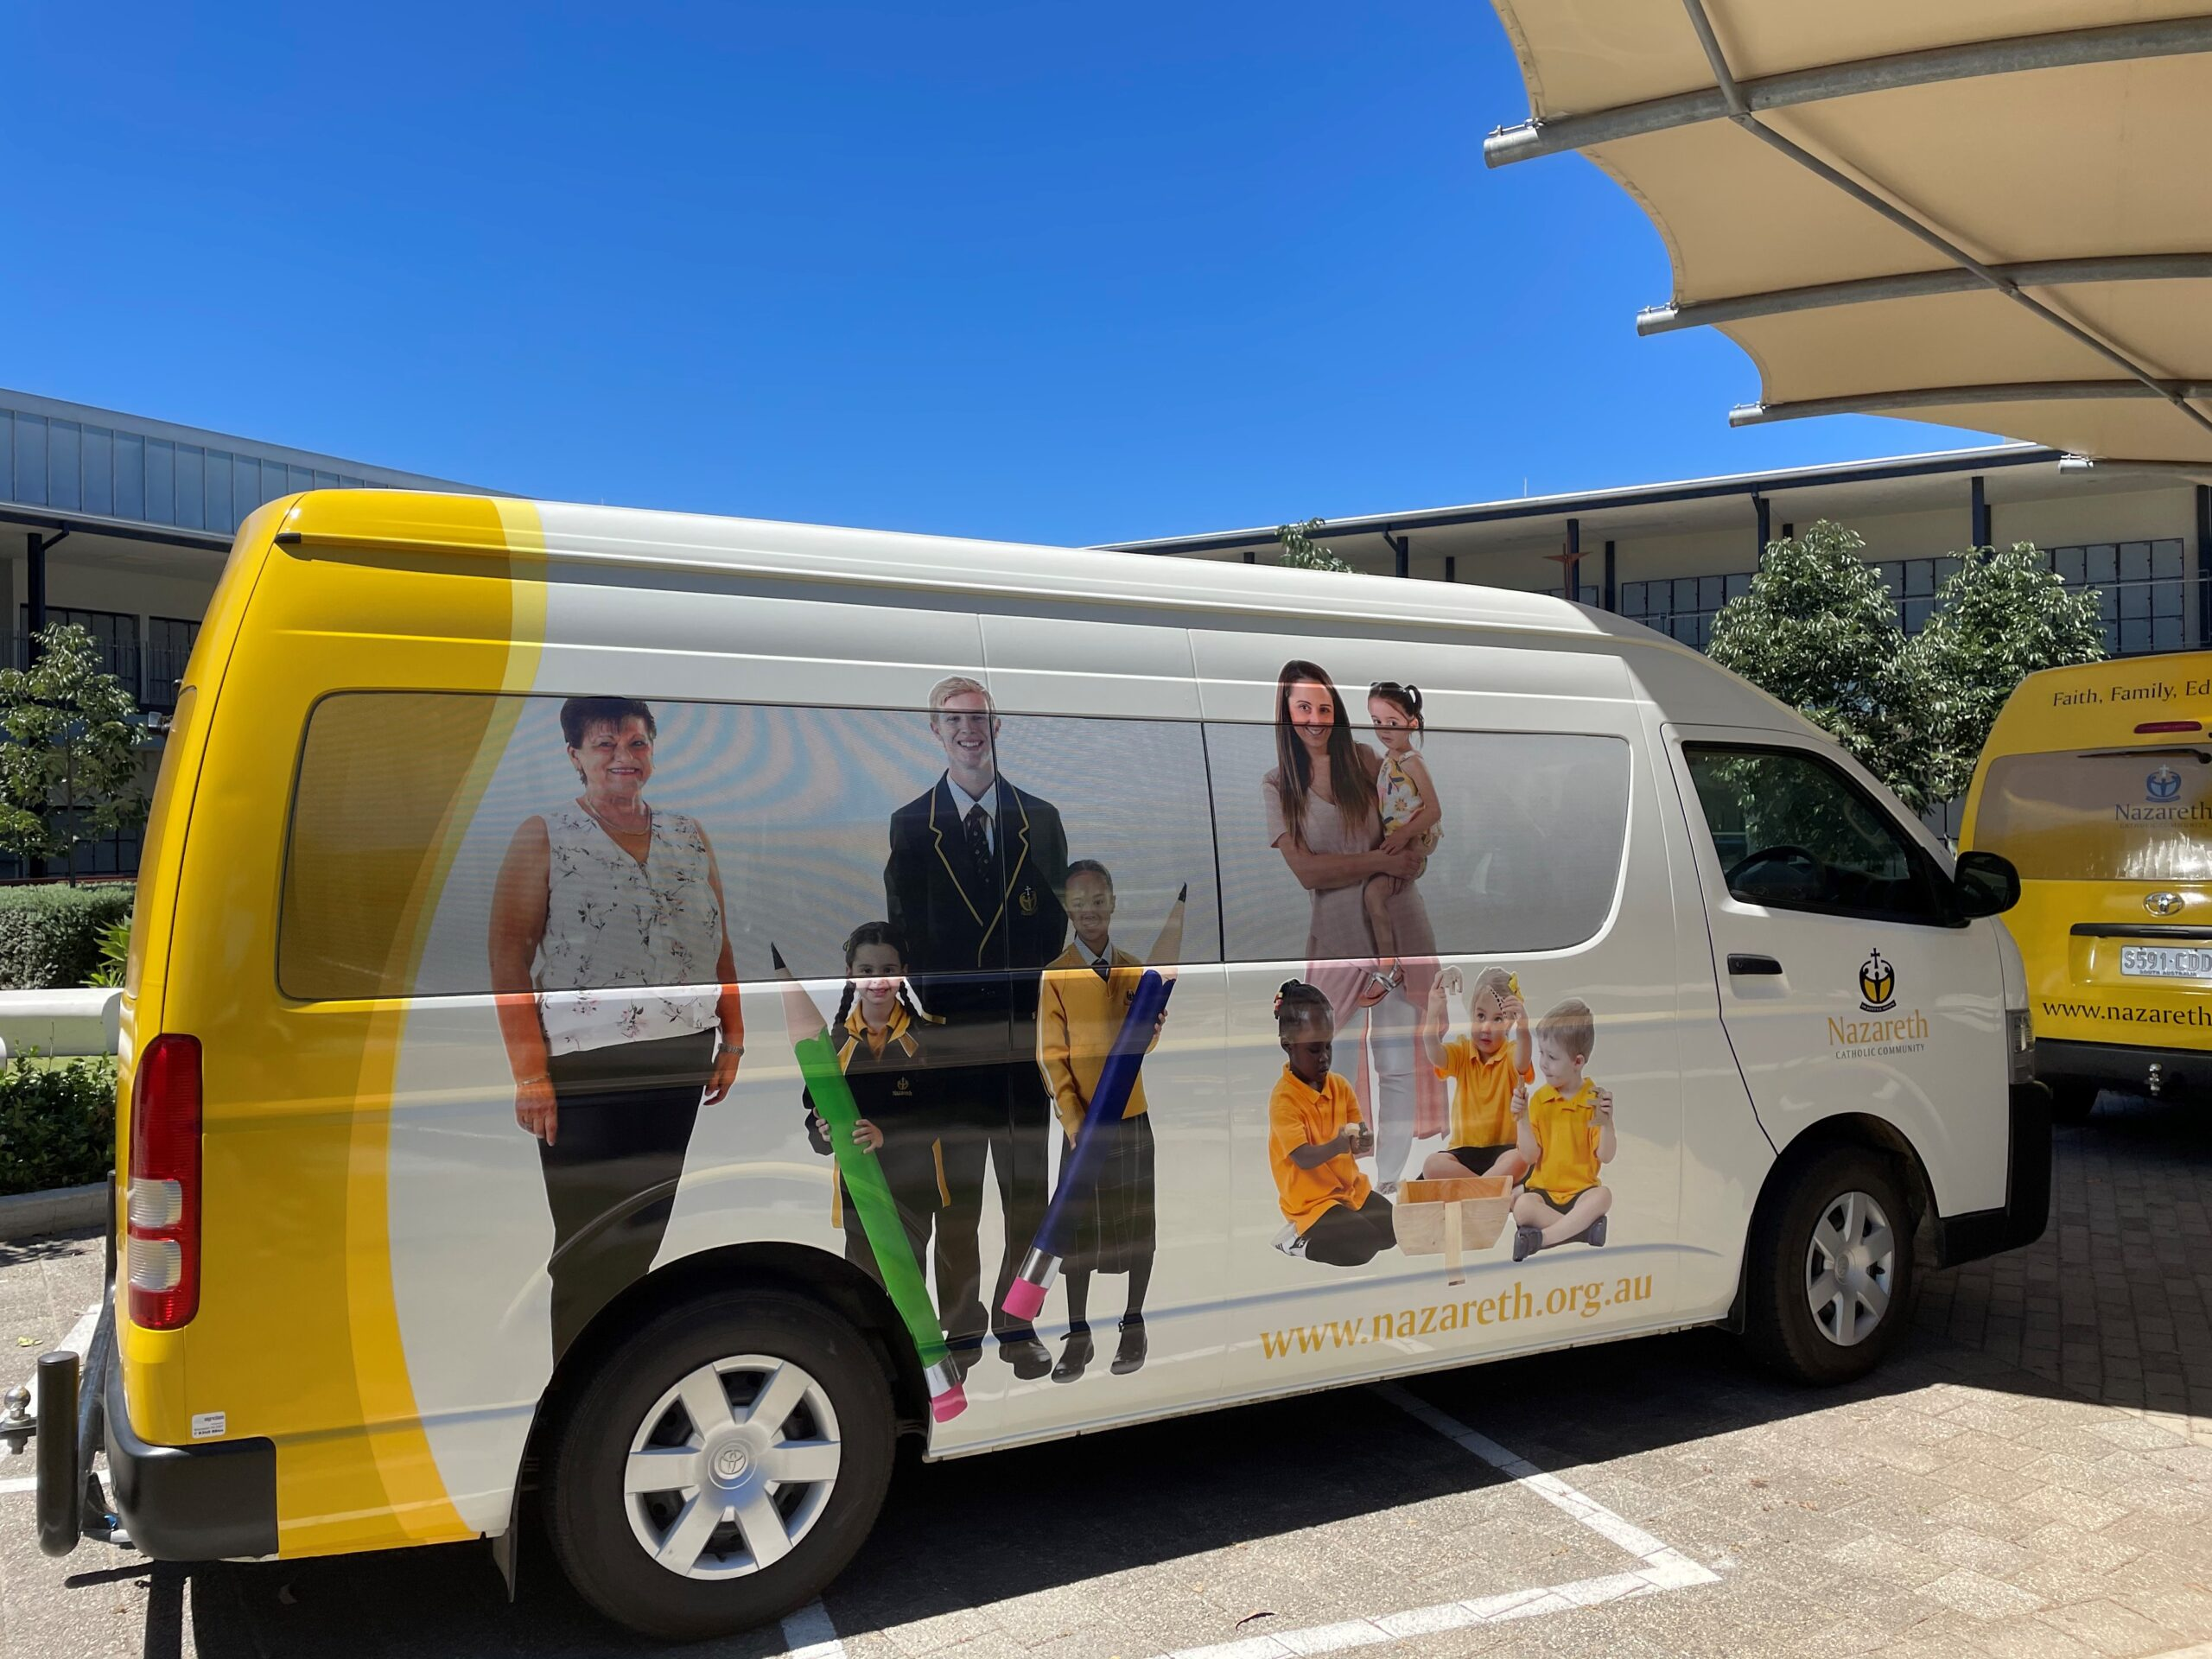 """Featured image for """"Nazareth communicates purpose, vision and mission with stunning bus graphics."""""""